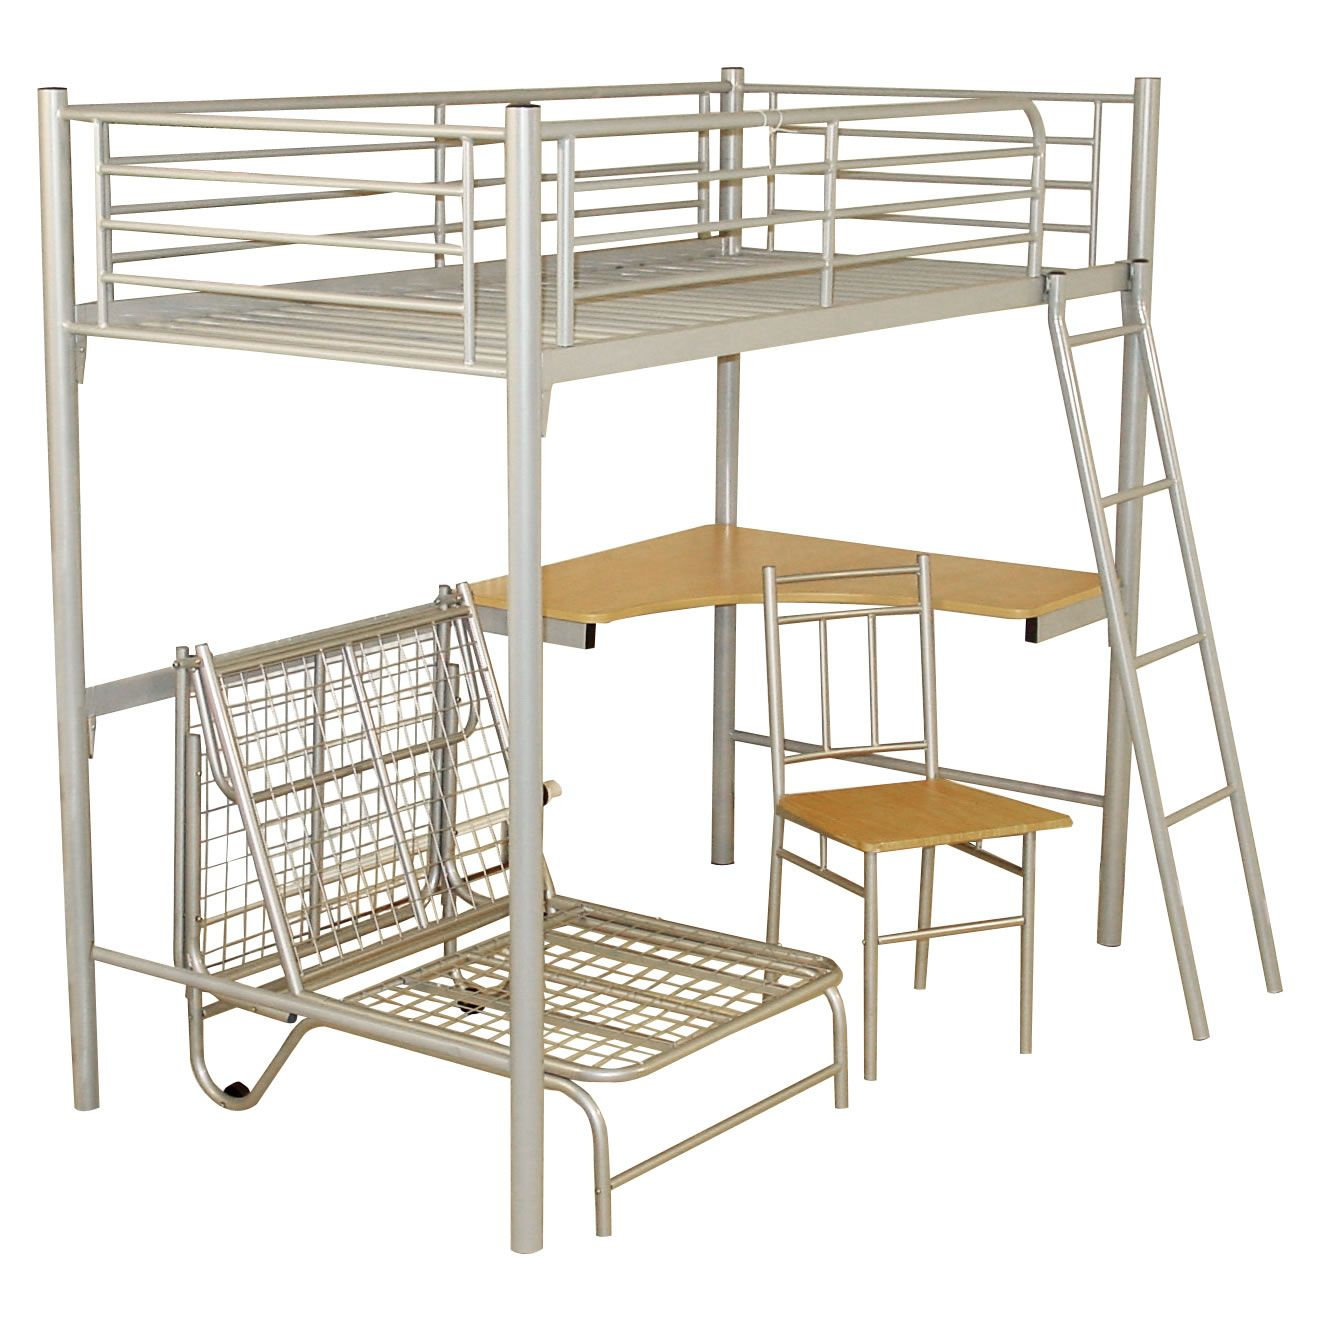 Study Bunk Bed Frame With Futon Chair Worldstores Flosbo Bedroom